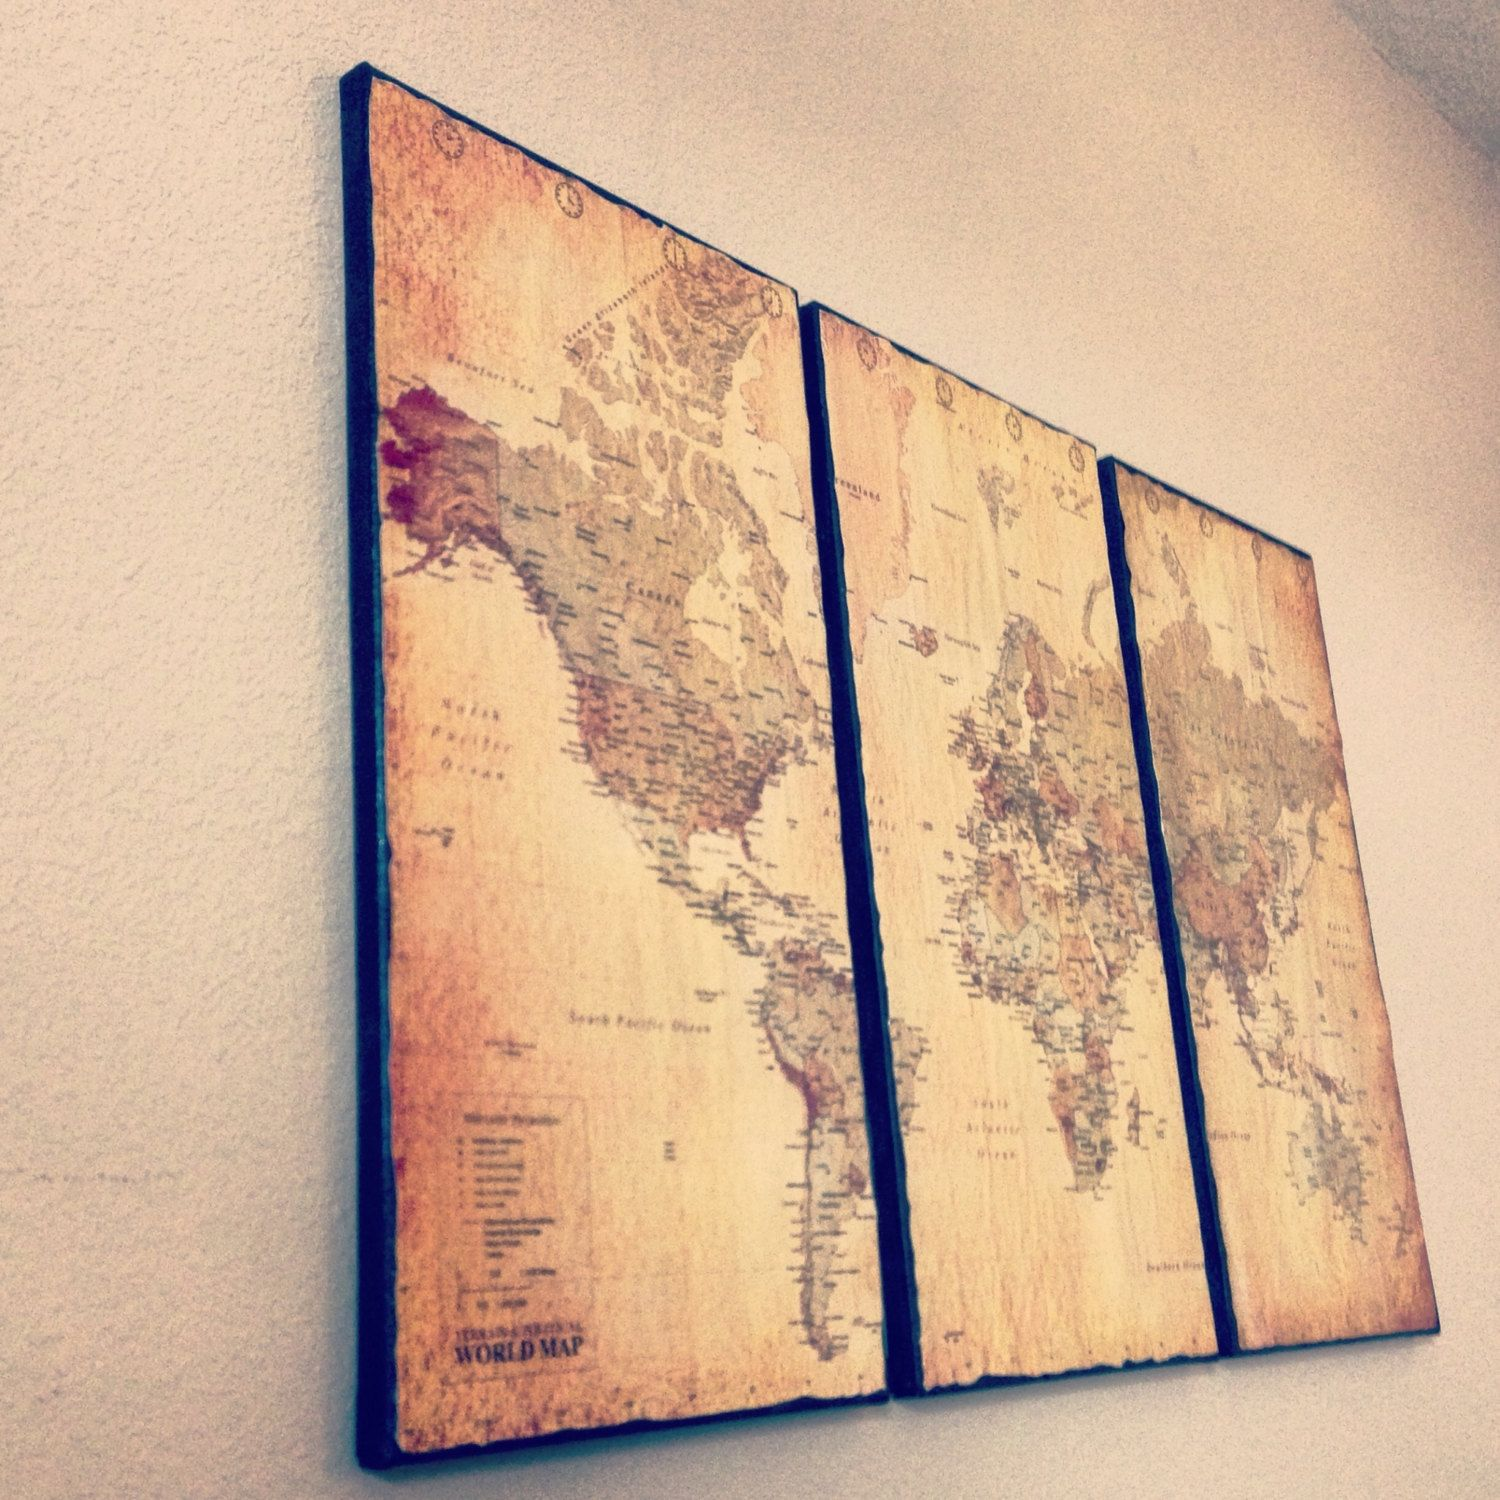 Custom vintage world map canvas art | Canvases, Vintage and House